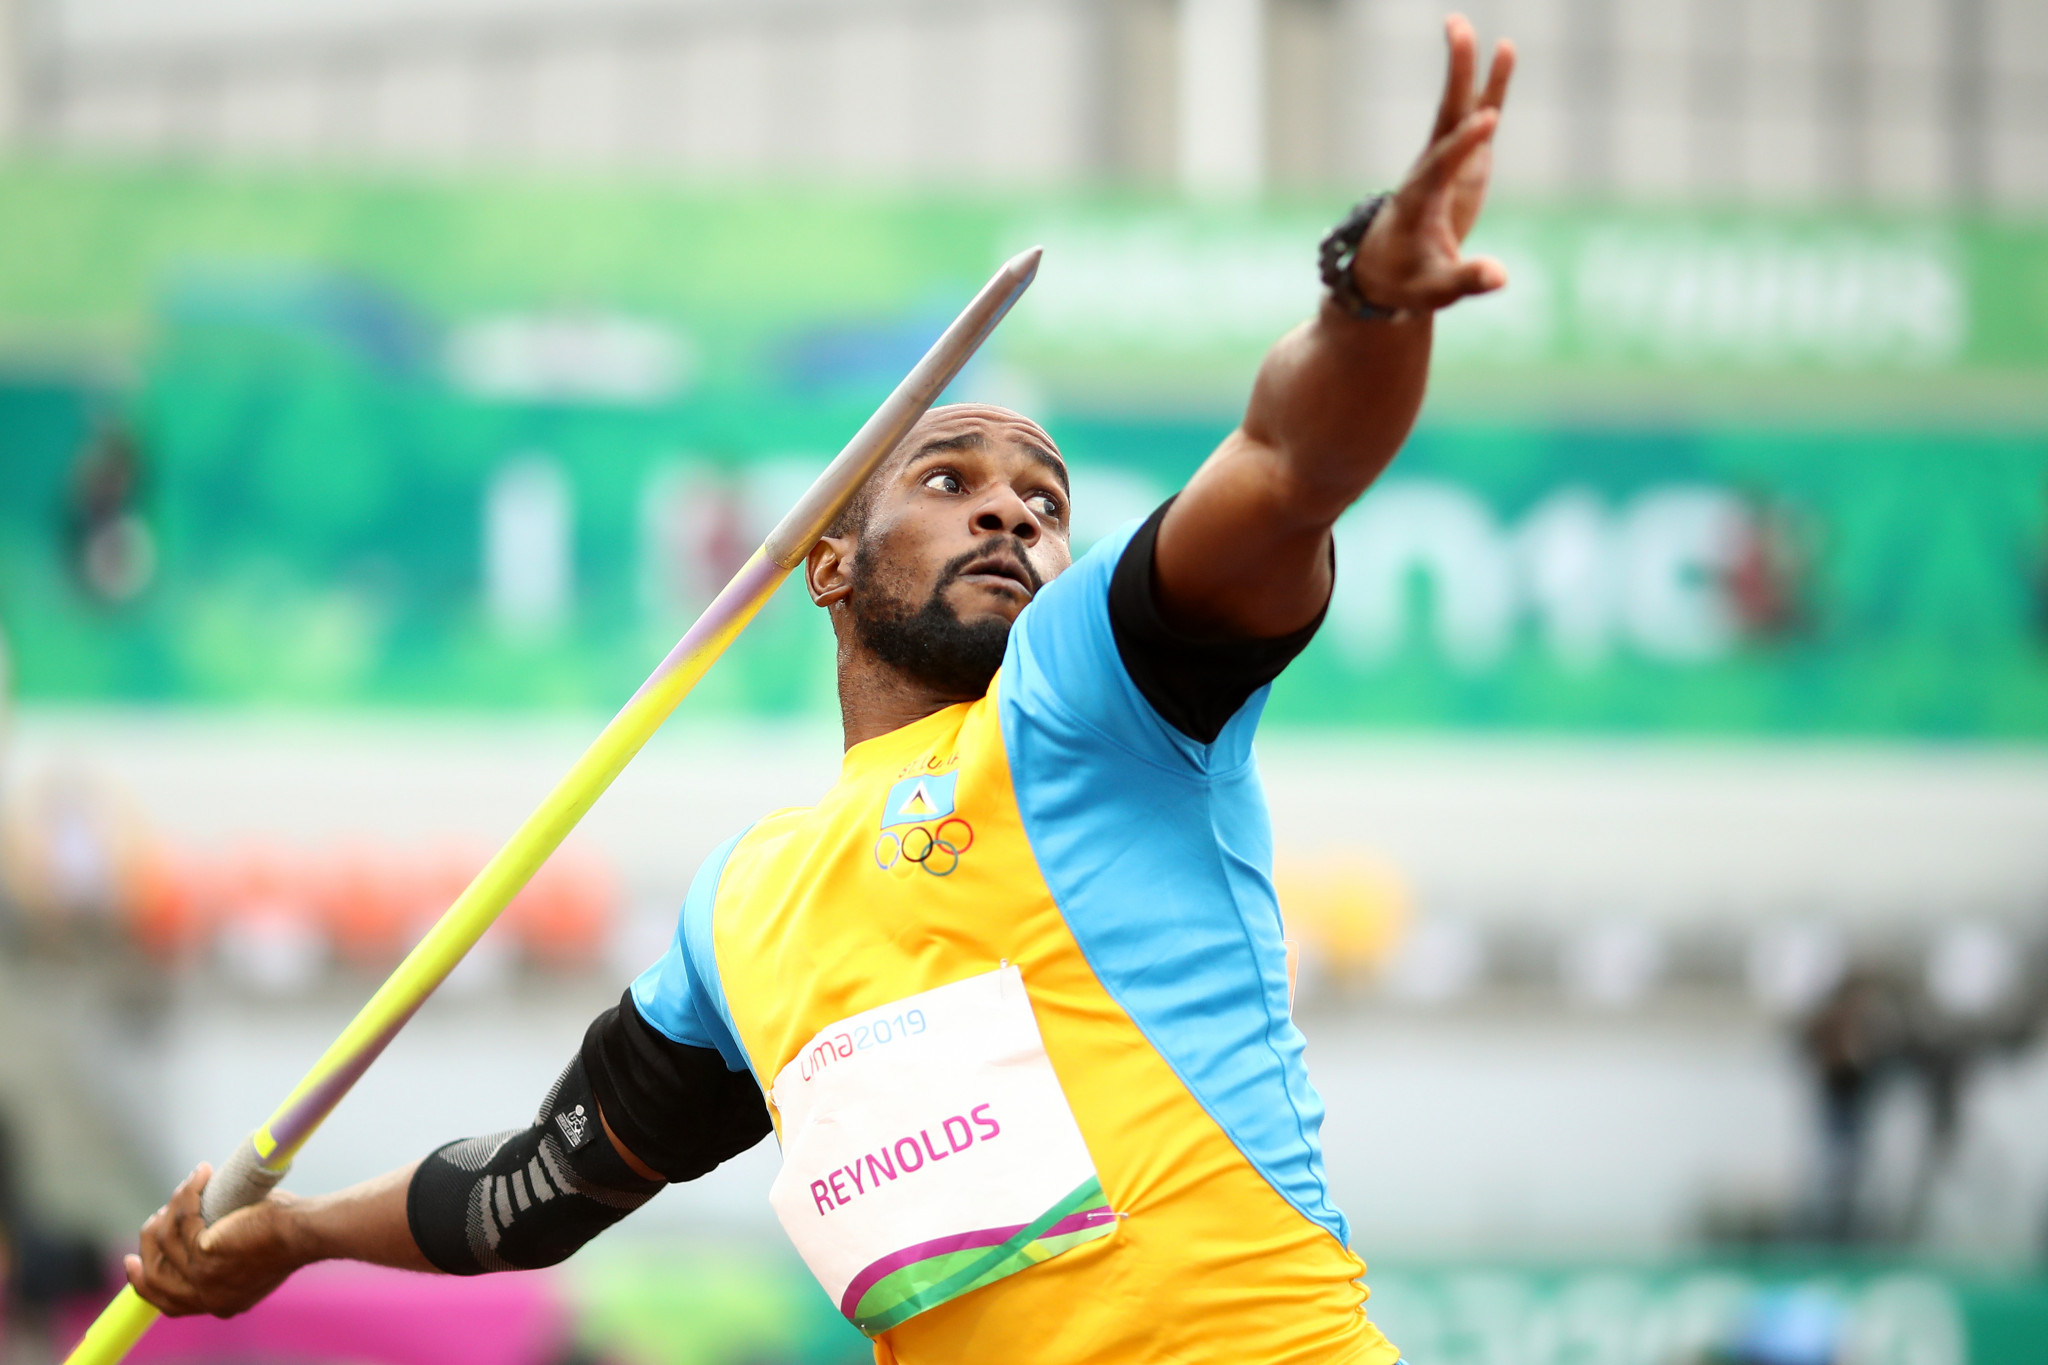 Albert Reynolds claimed bronze for St Lucia in the men's javelin ©Getty Images